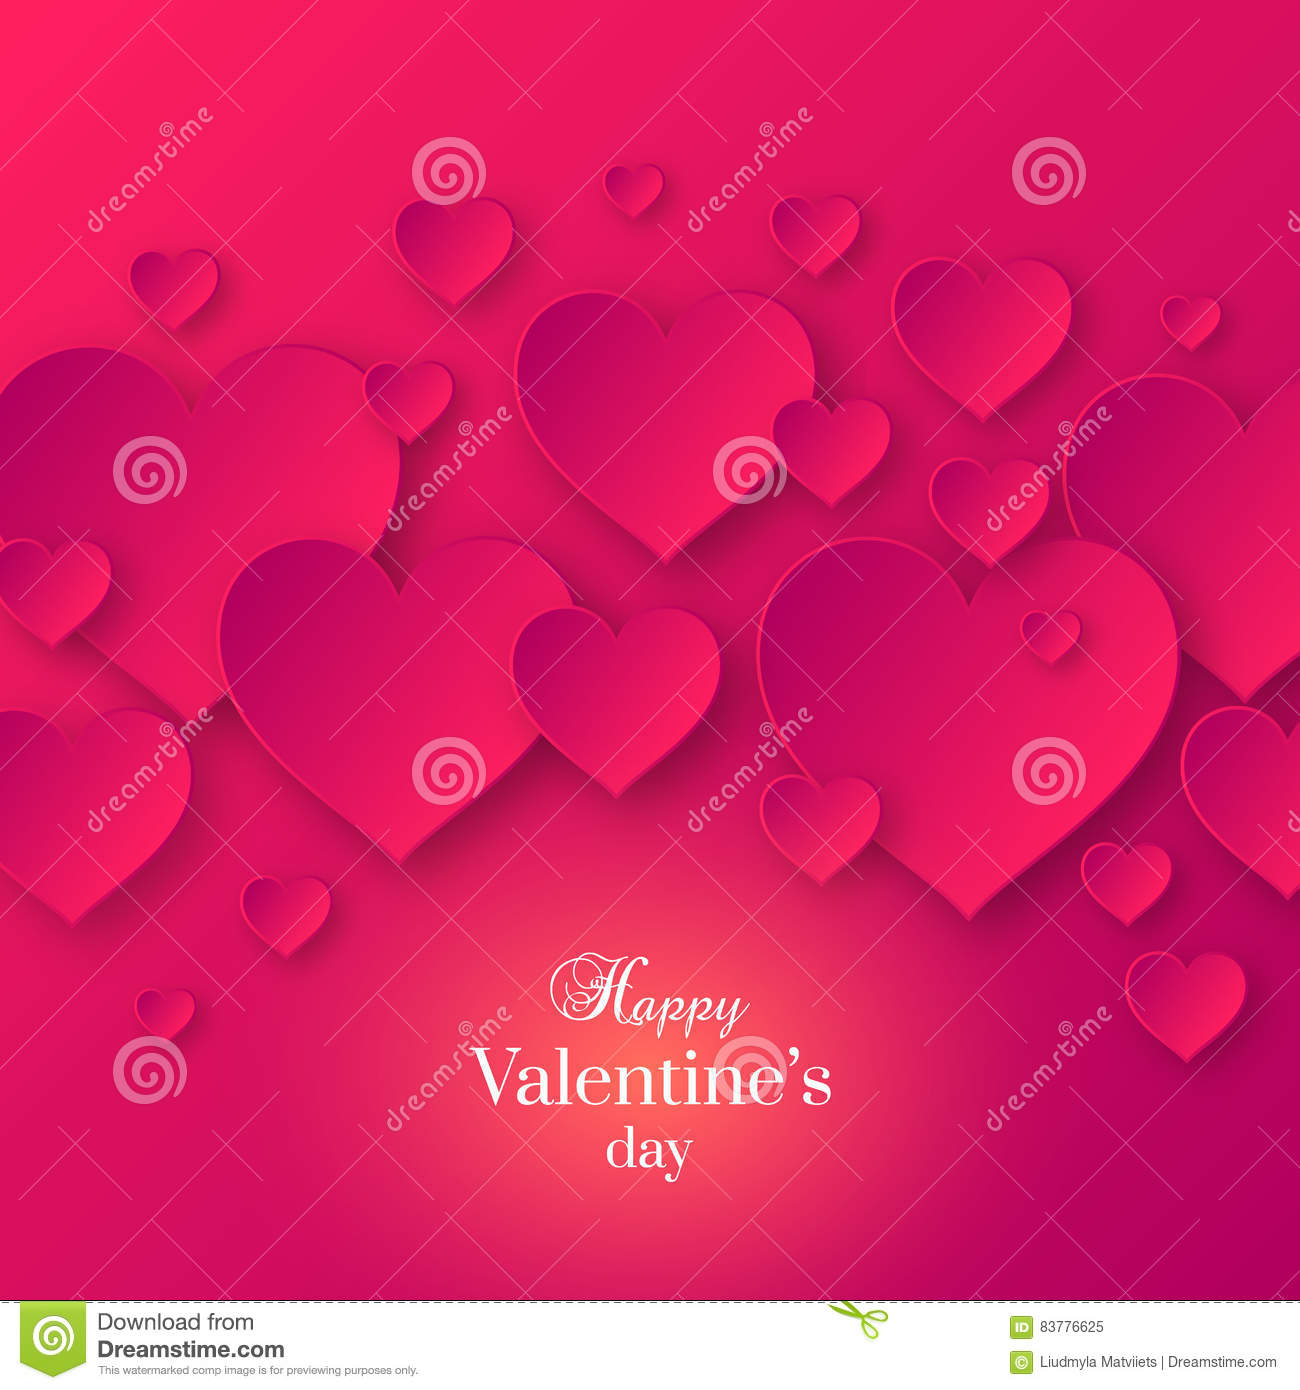 Abstract Valentine& x27;s day pink color background